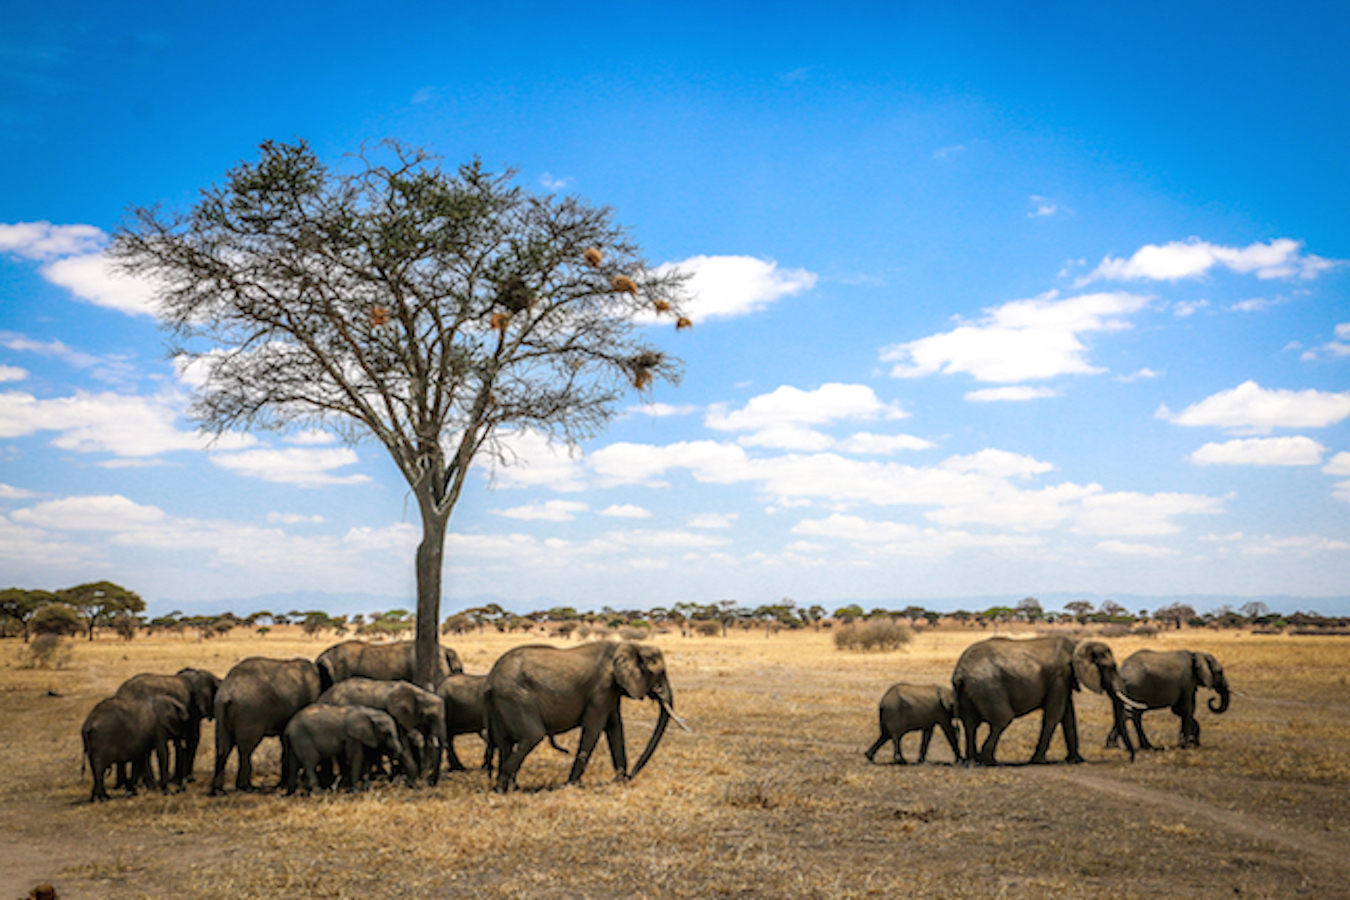 Elephant Herd in Tarangire National Park, Tanzania